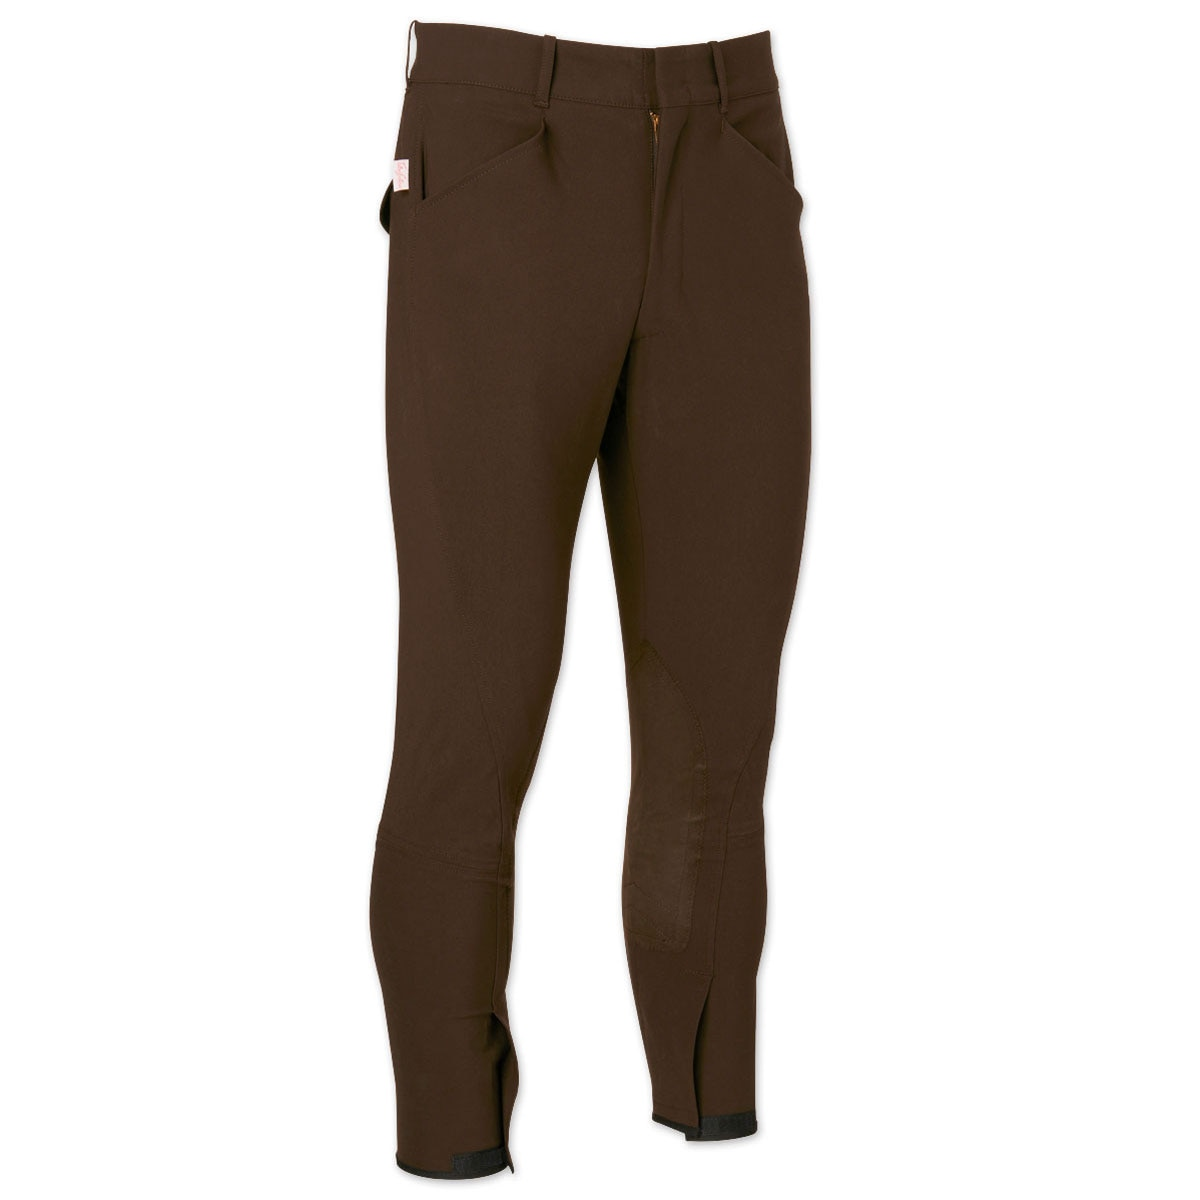 The Tailored Sportsman Men's TS Breeches